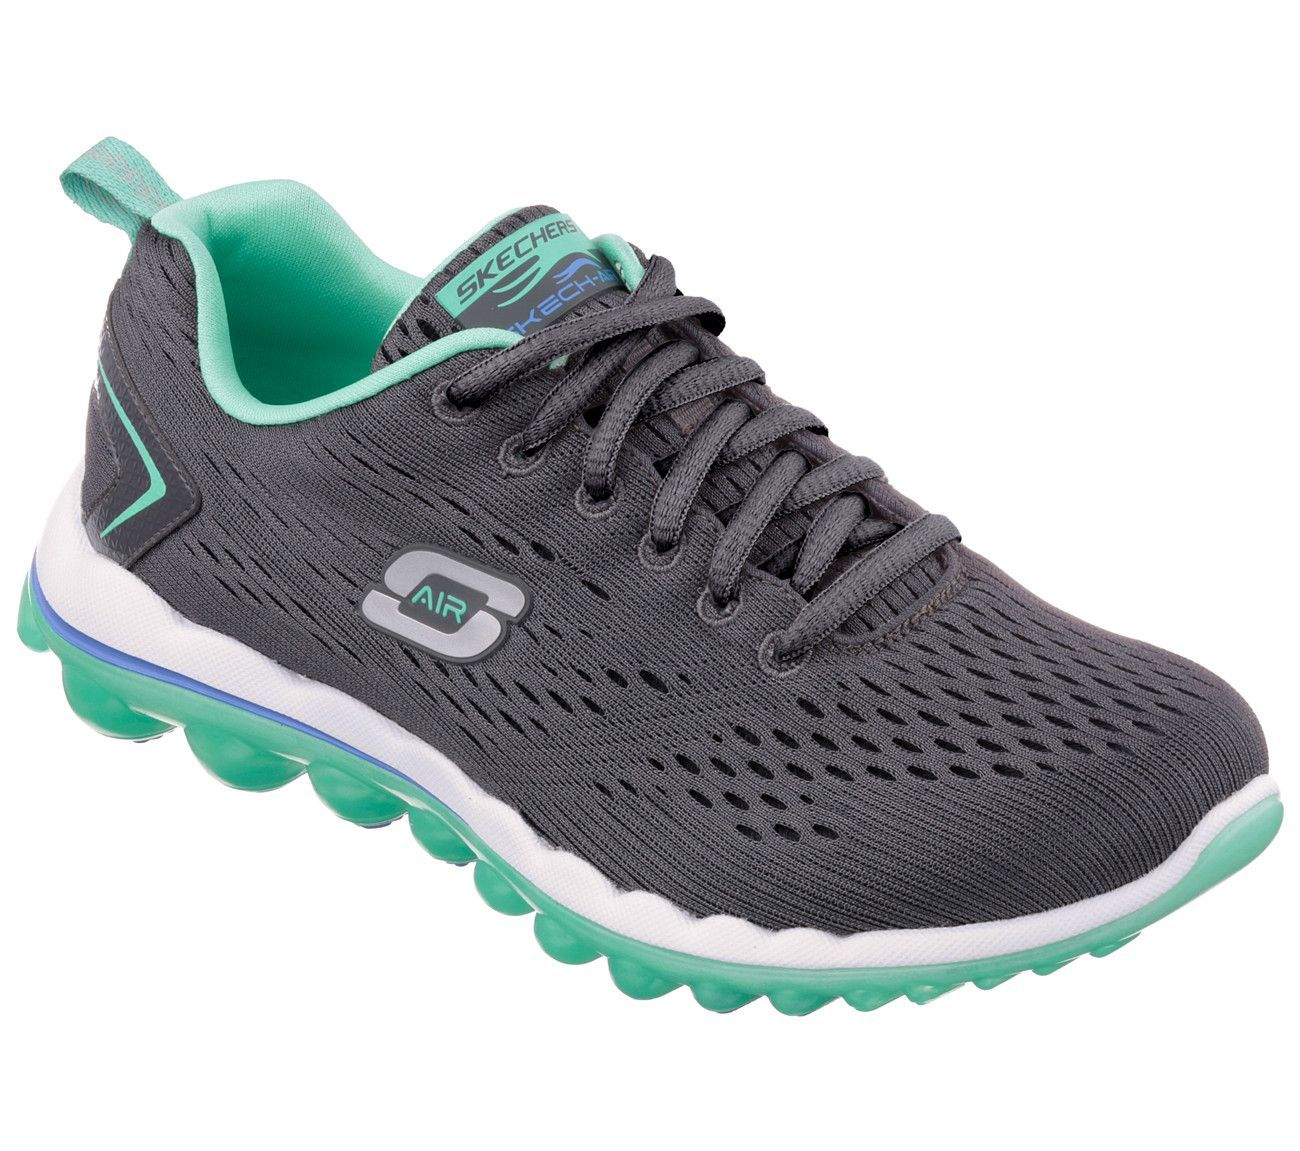 5979fb53e9a7 Skech Air 2.0 by Skechers  Charcoal Turquoise